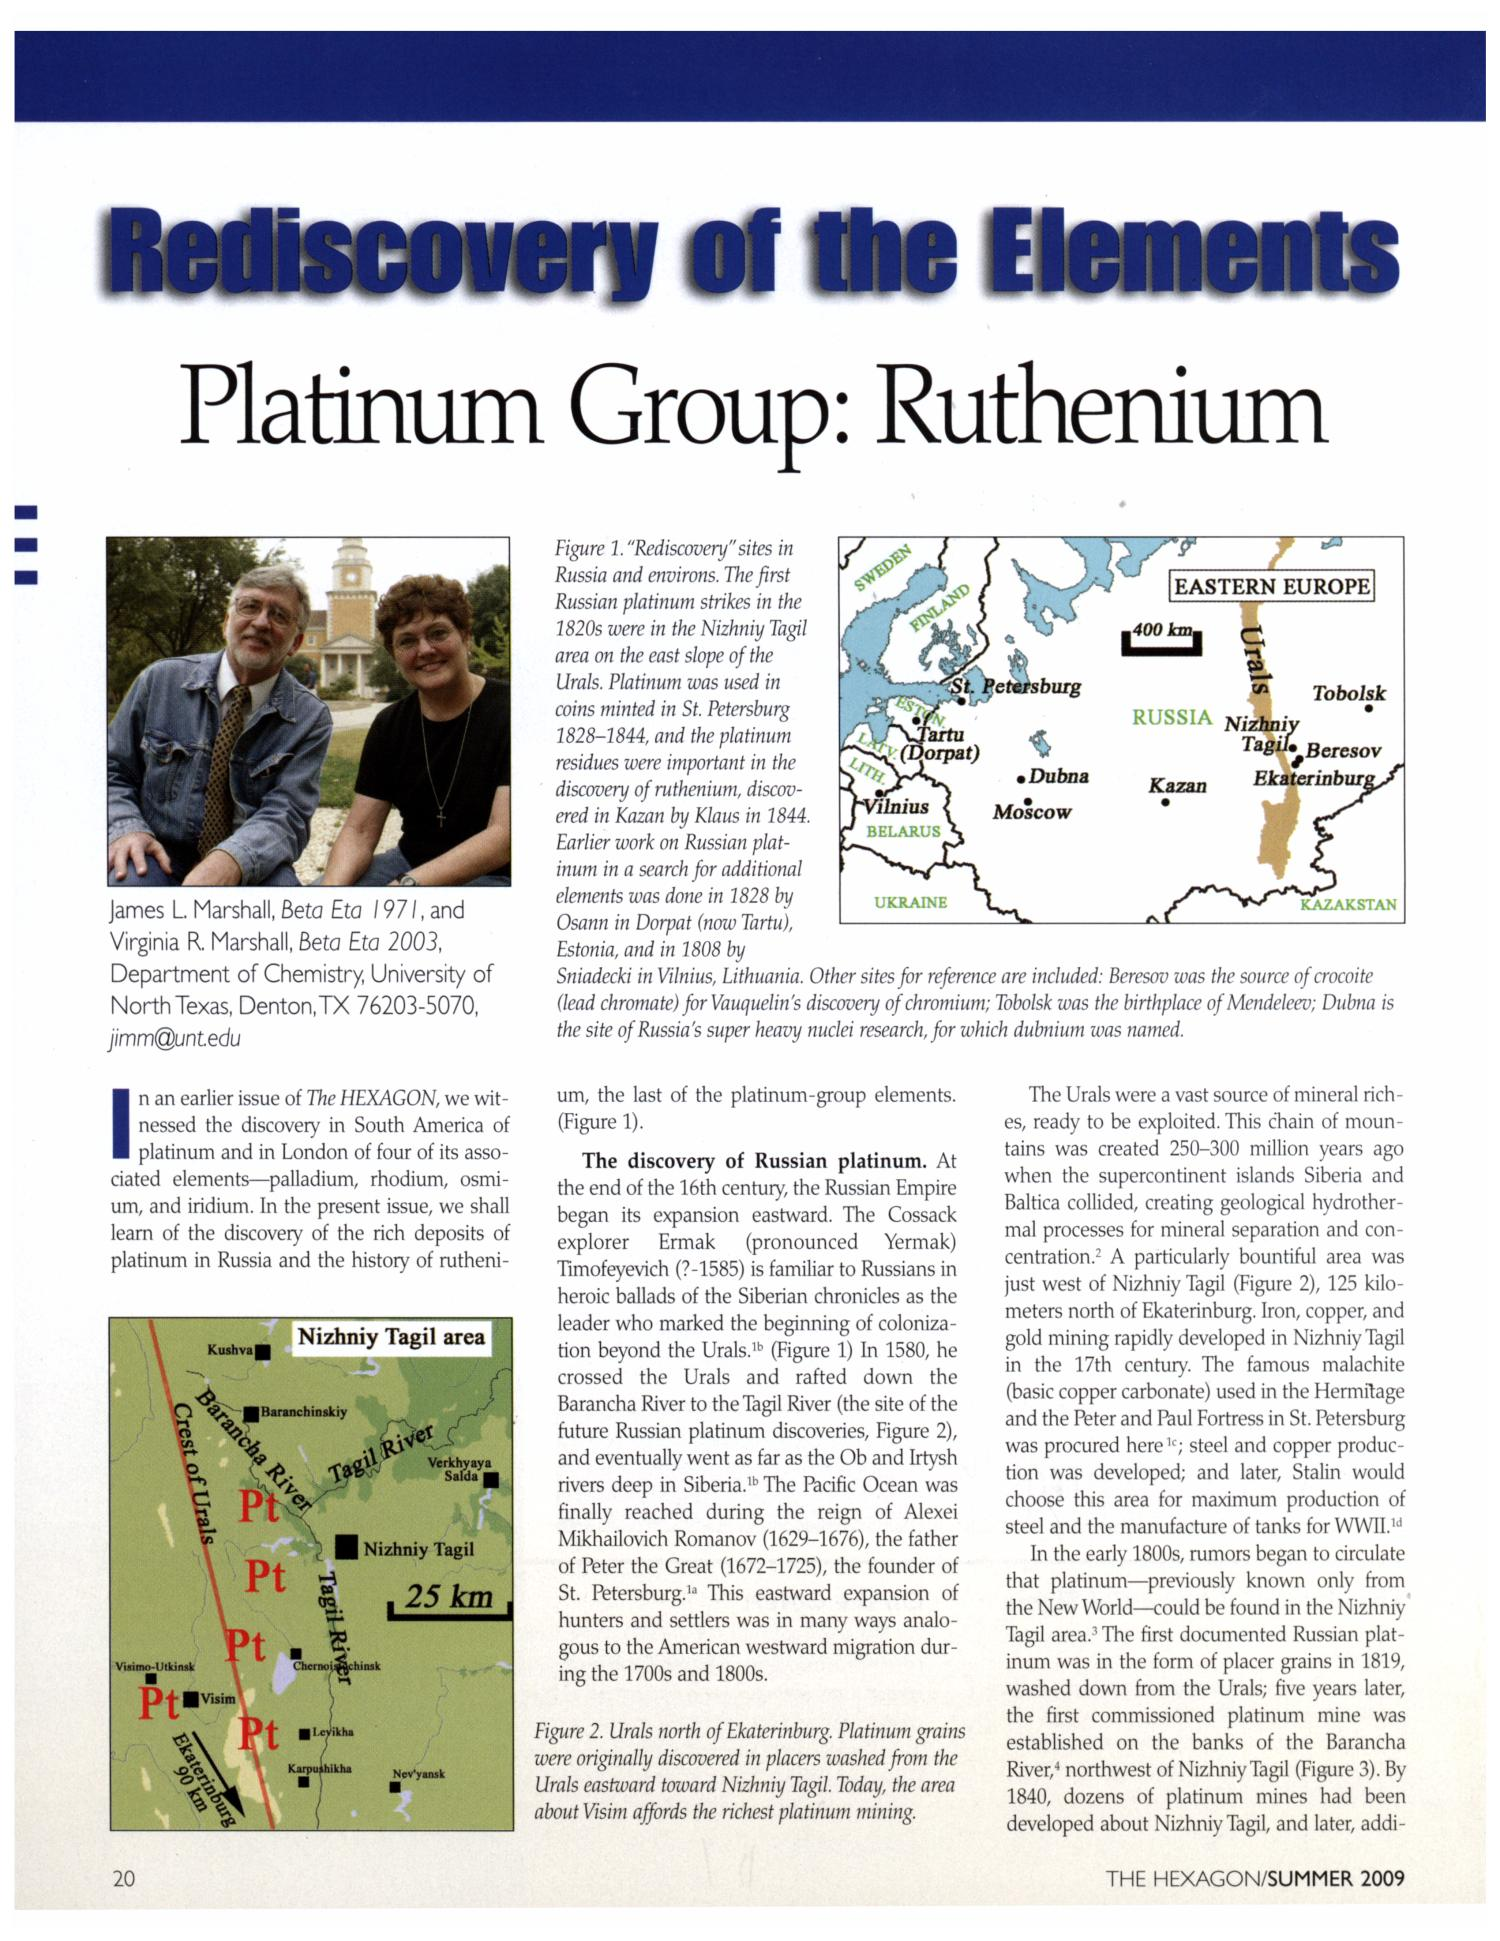 Rediscovery of the Elements: Ruthenium                                                                                                      [Sequence #]: 1 of 5